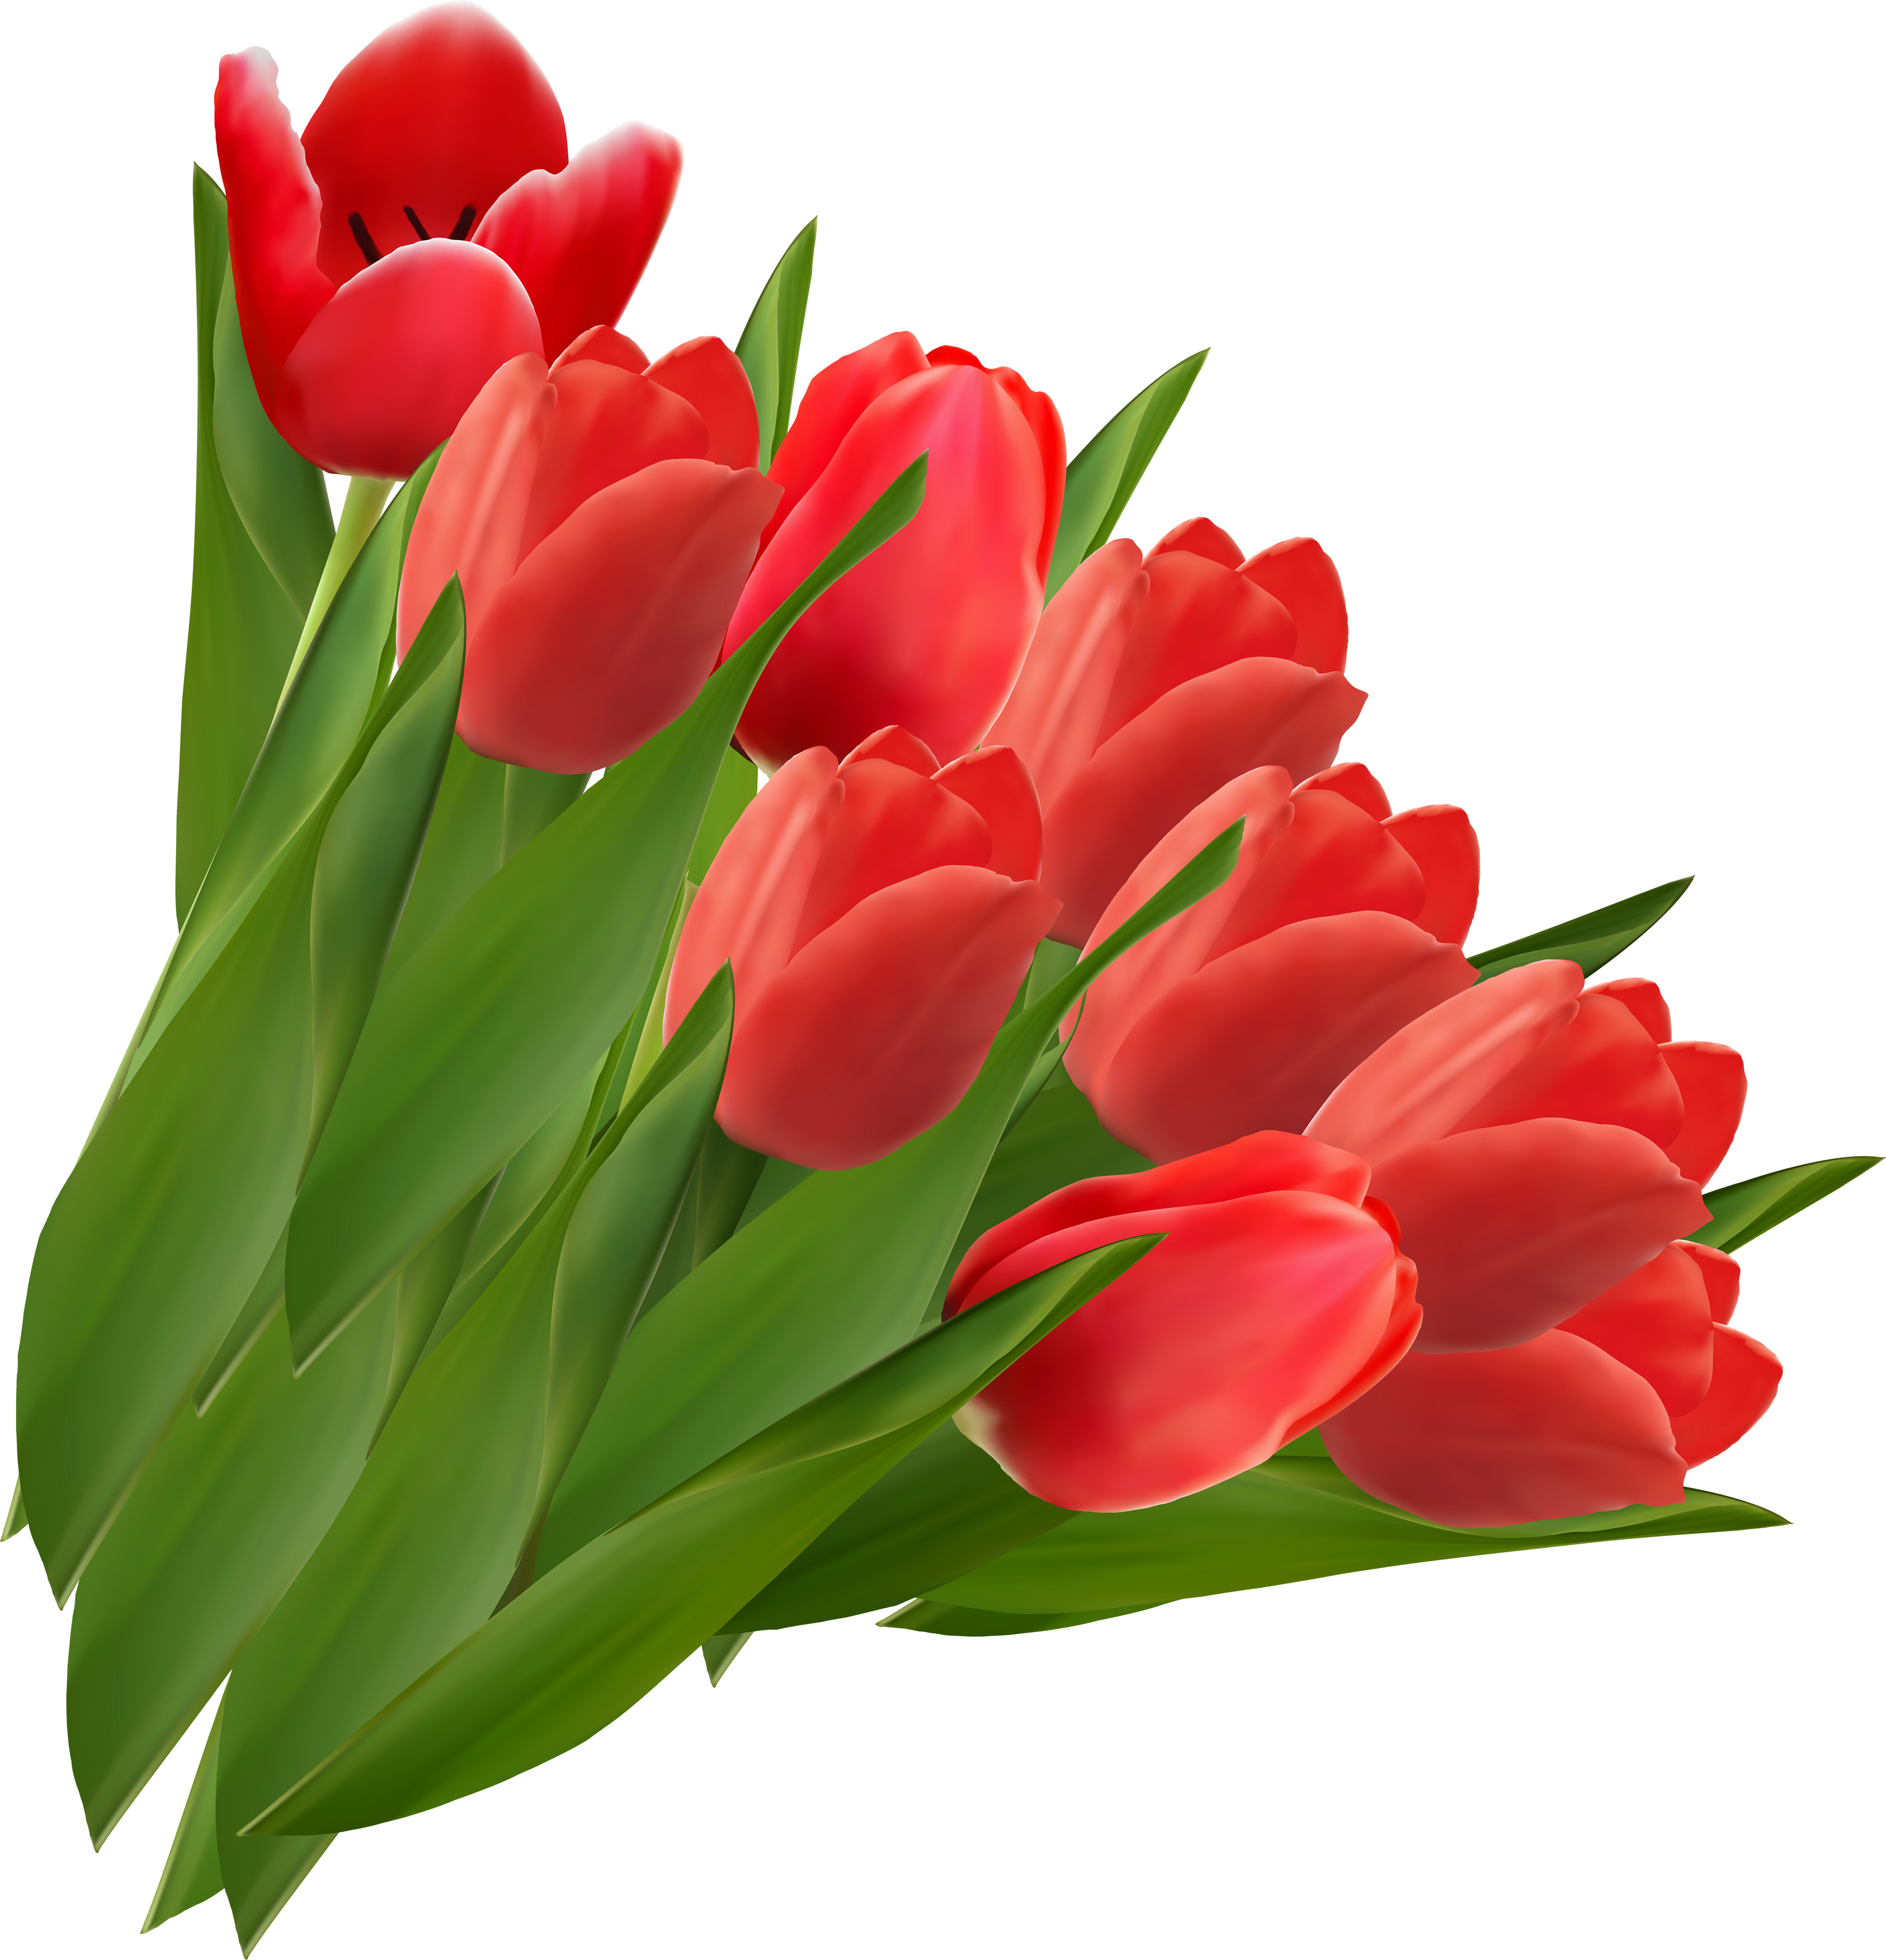 Tulip bouquet png. Images free download image